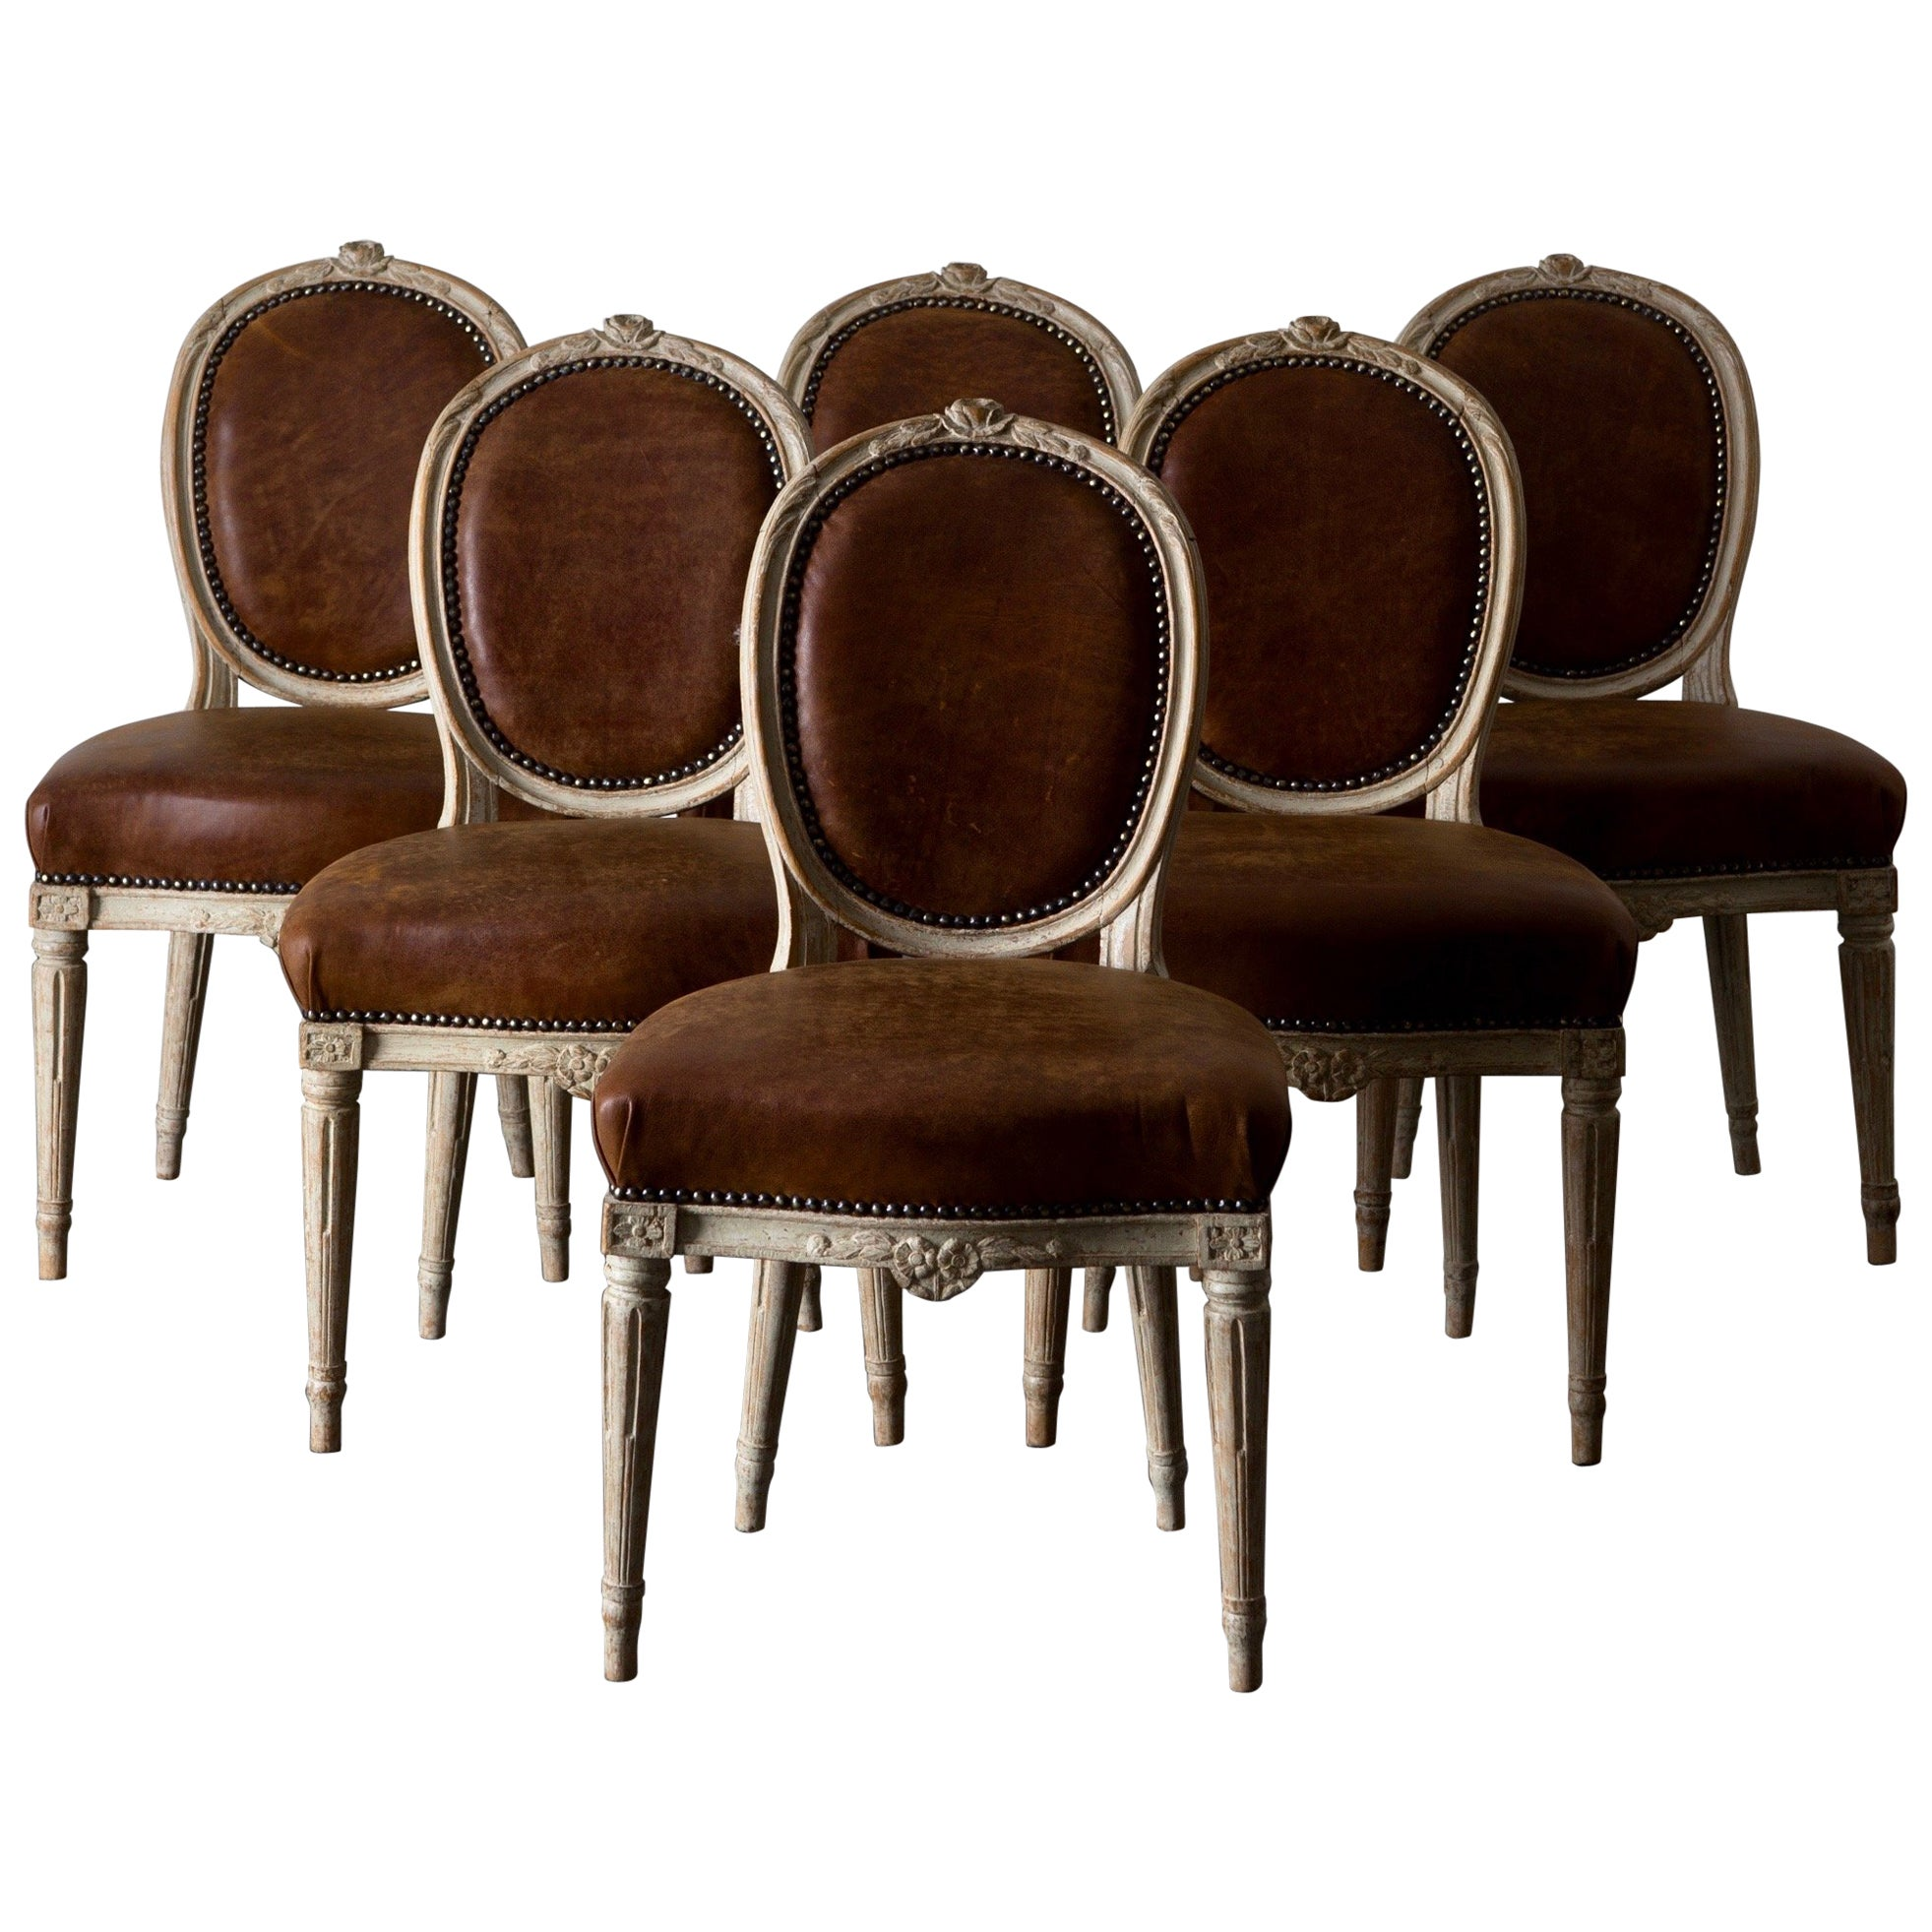 Chairs Dining Chairs Swedish Set of Six Gustavian Period Sweden